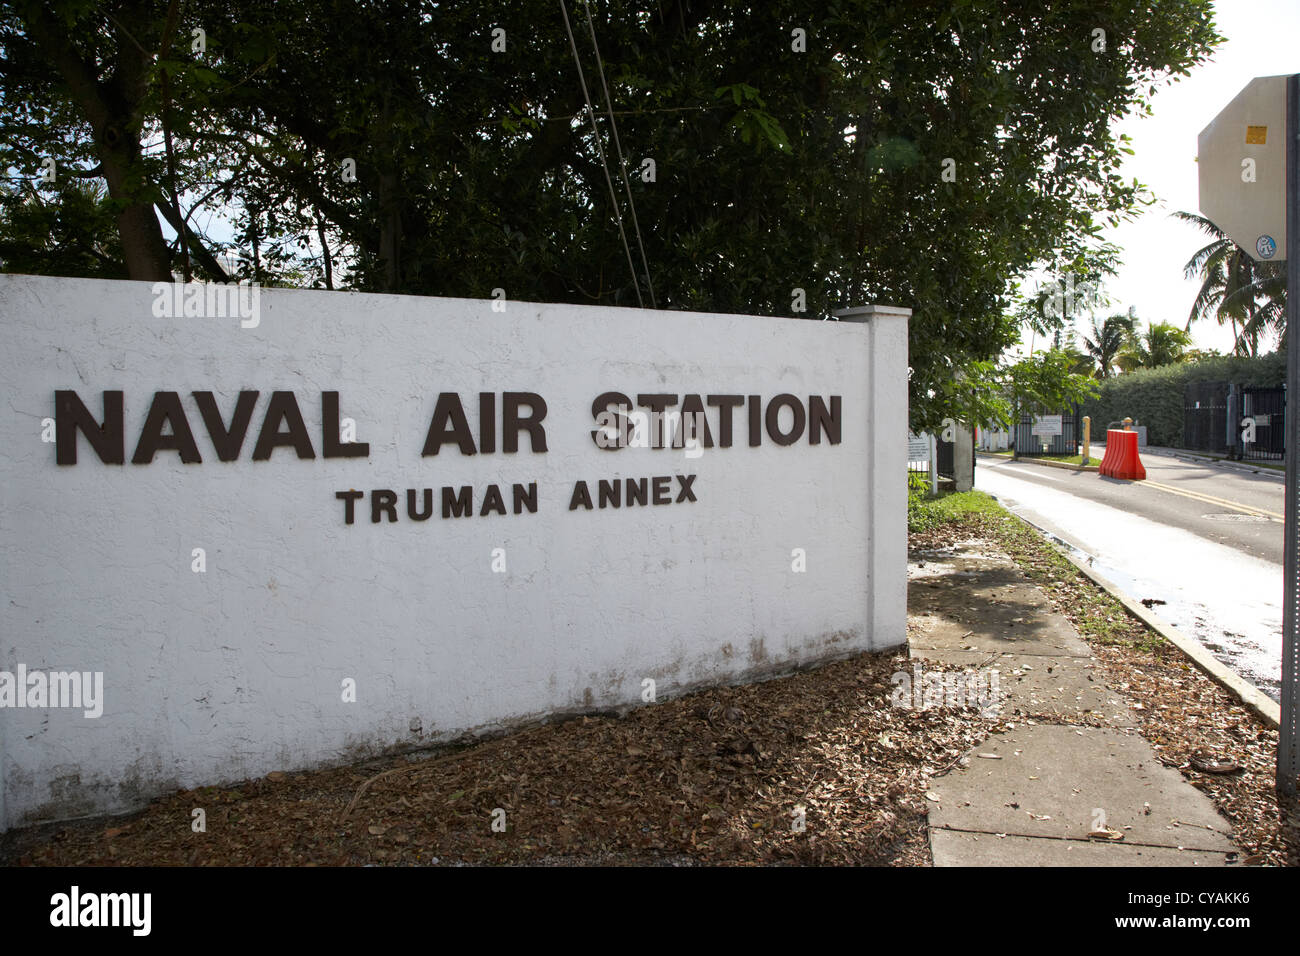 entrance to naval air station truman annex key west florida usa - Stock Image